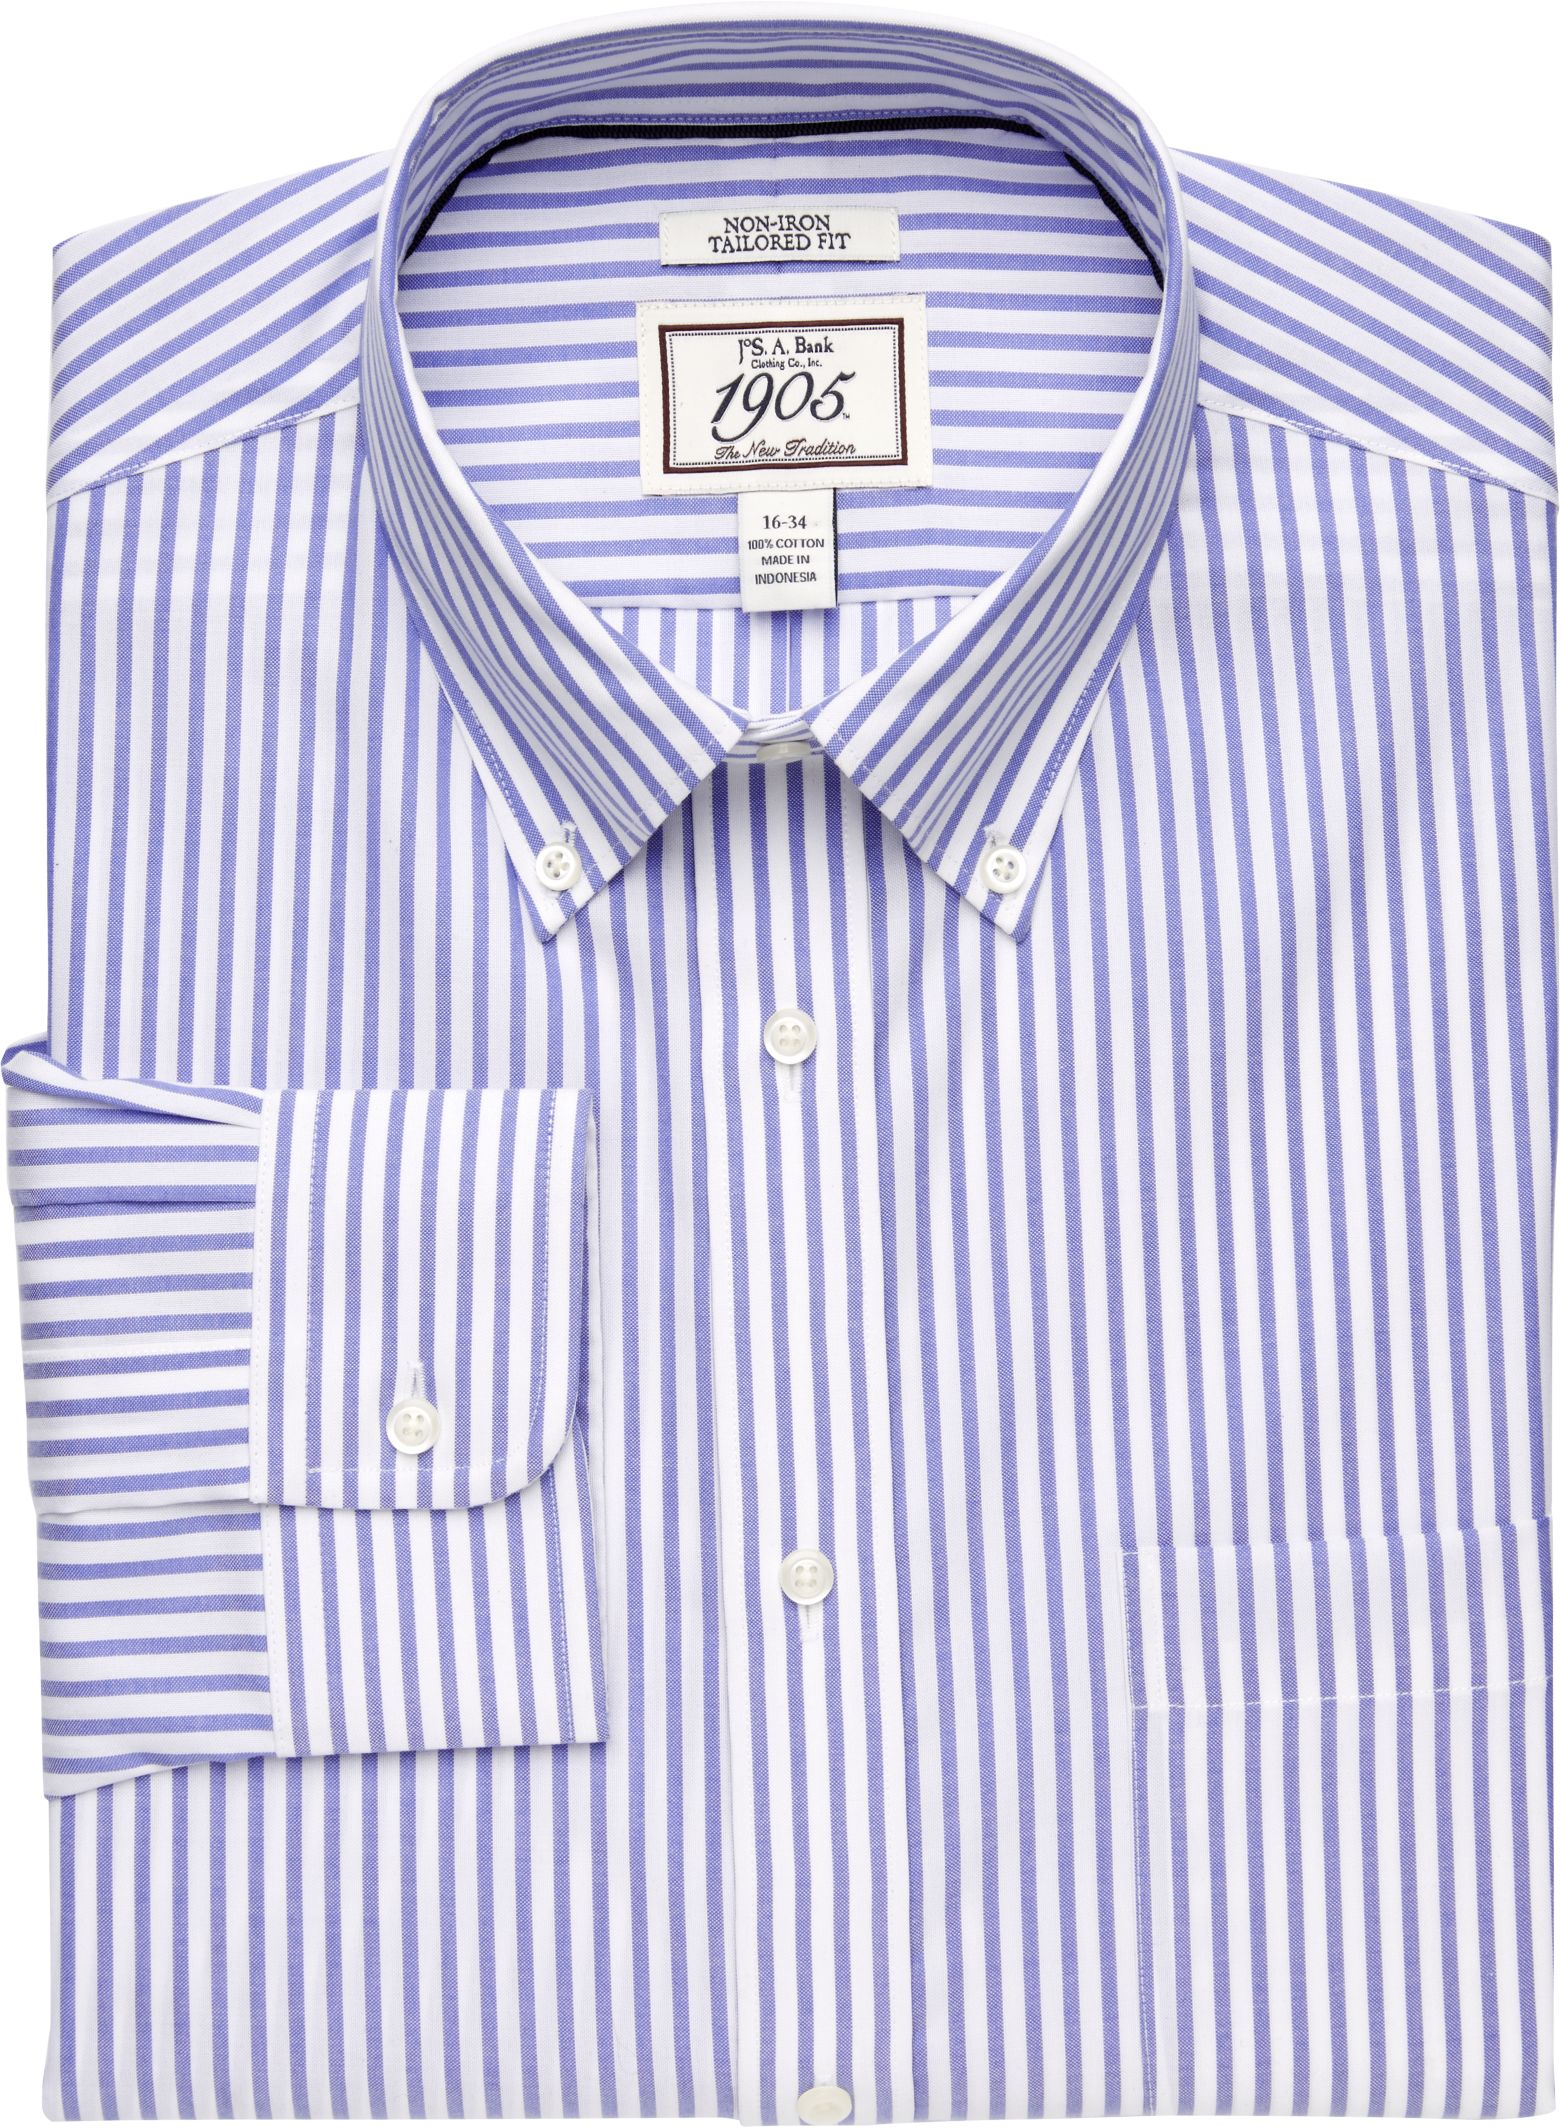 Mens Tailored fit Buttoned Down Dress Shirt